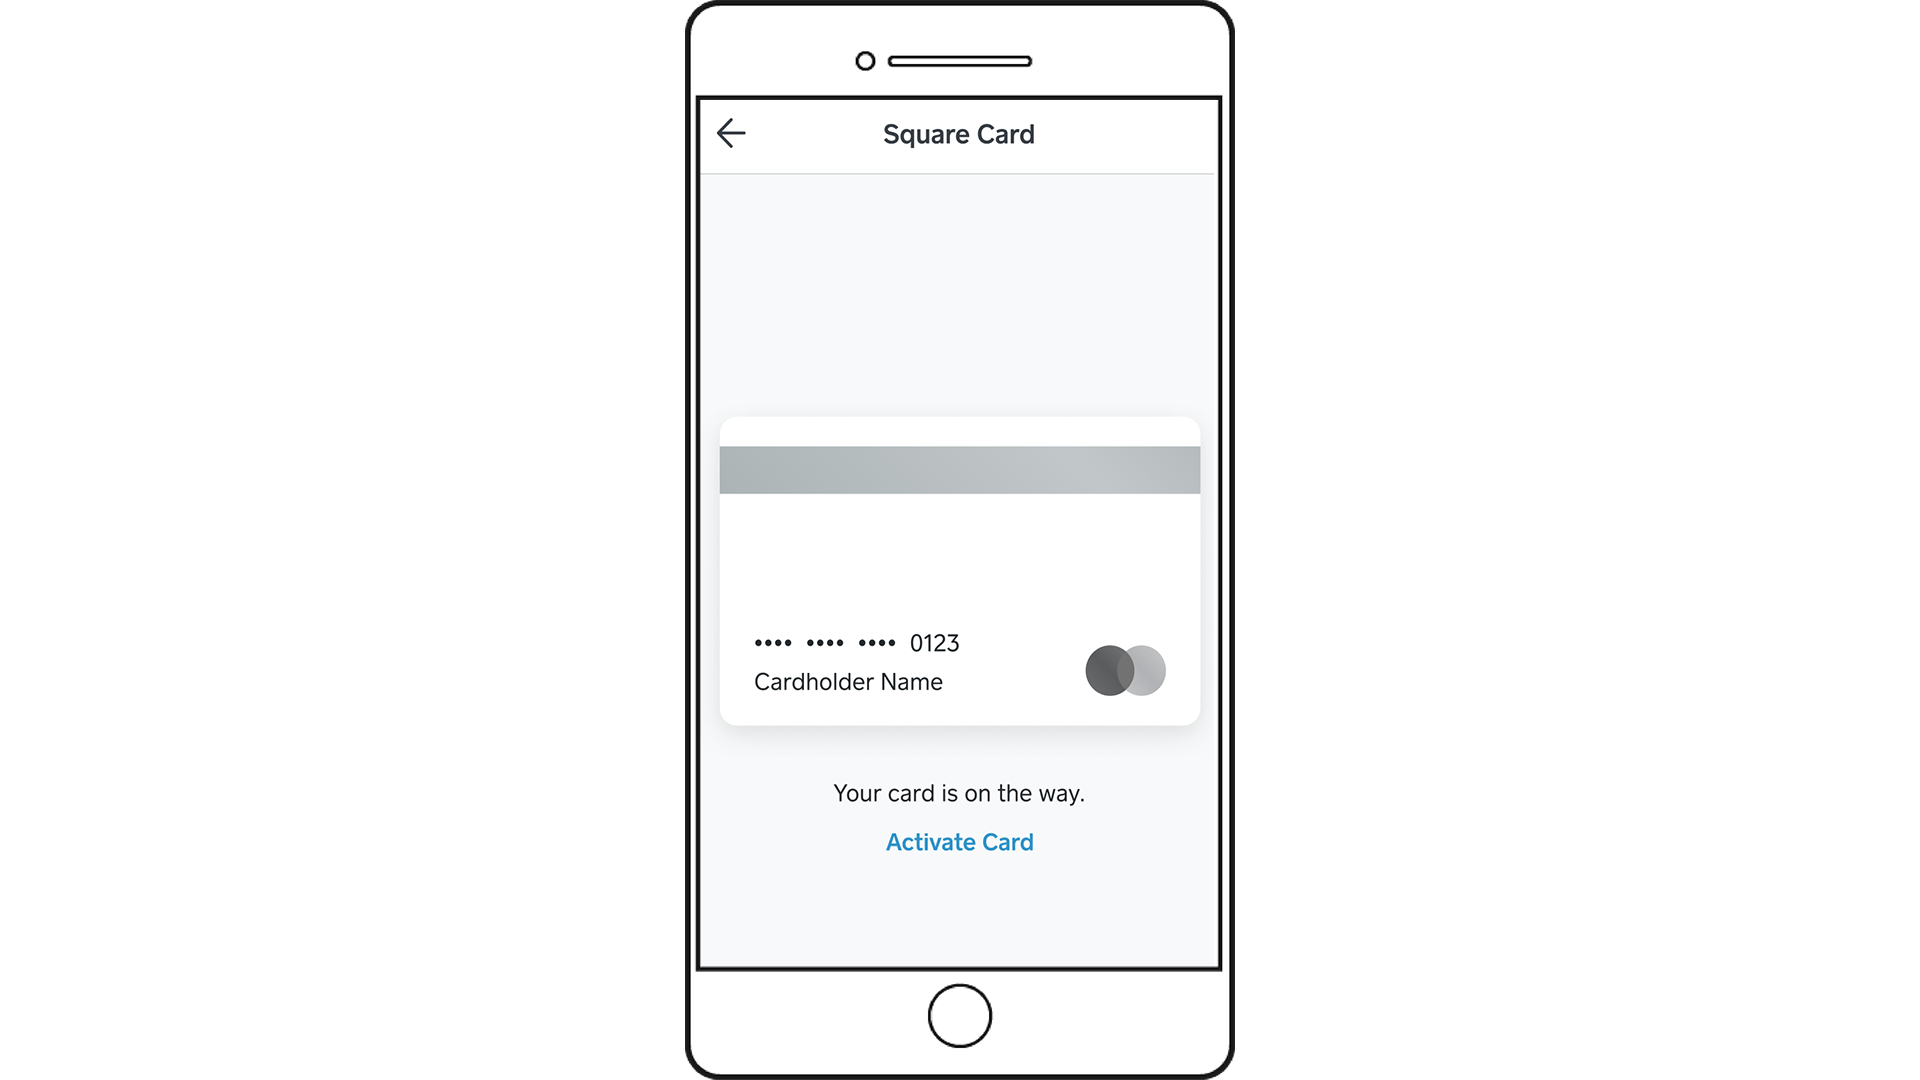 Get Started With Square Card | Square Support Center - US